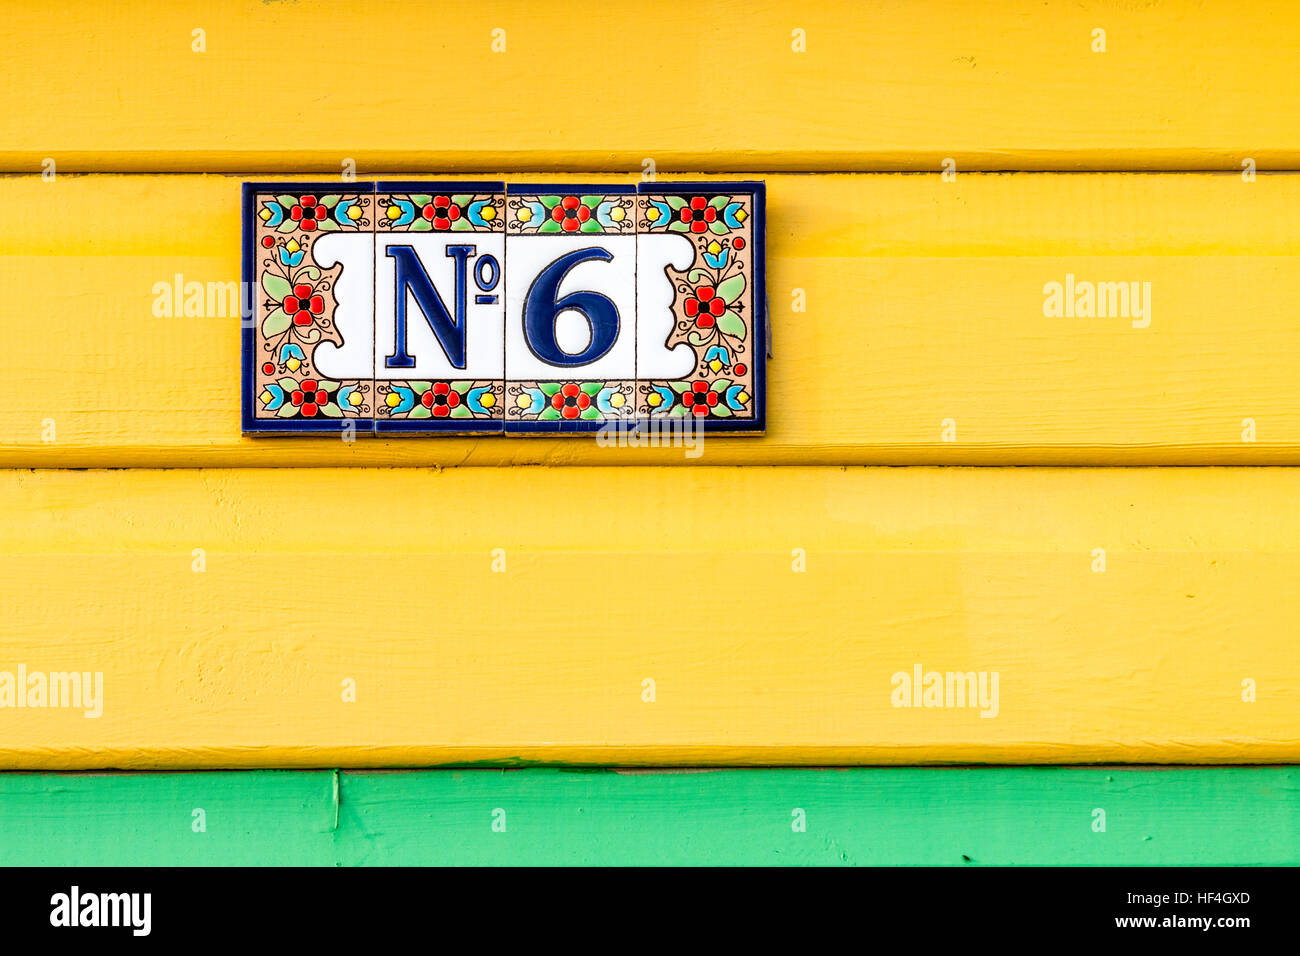 England, Whitstable. Number 6 plate with flower border on four tiles stuck on painted yellow boards, with green - Stock Image